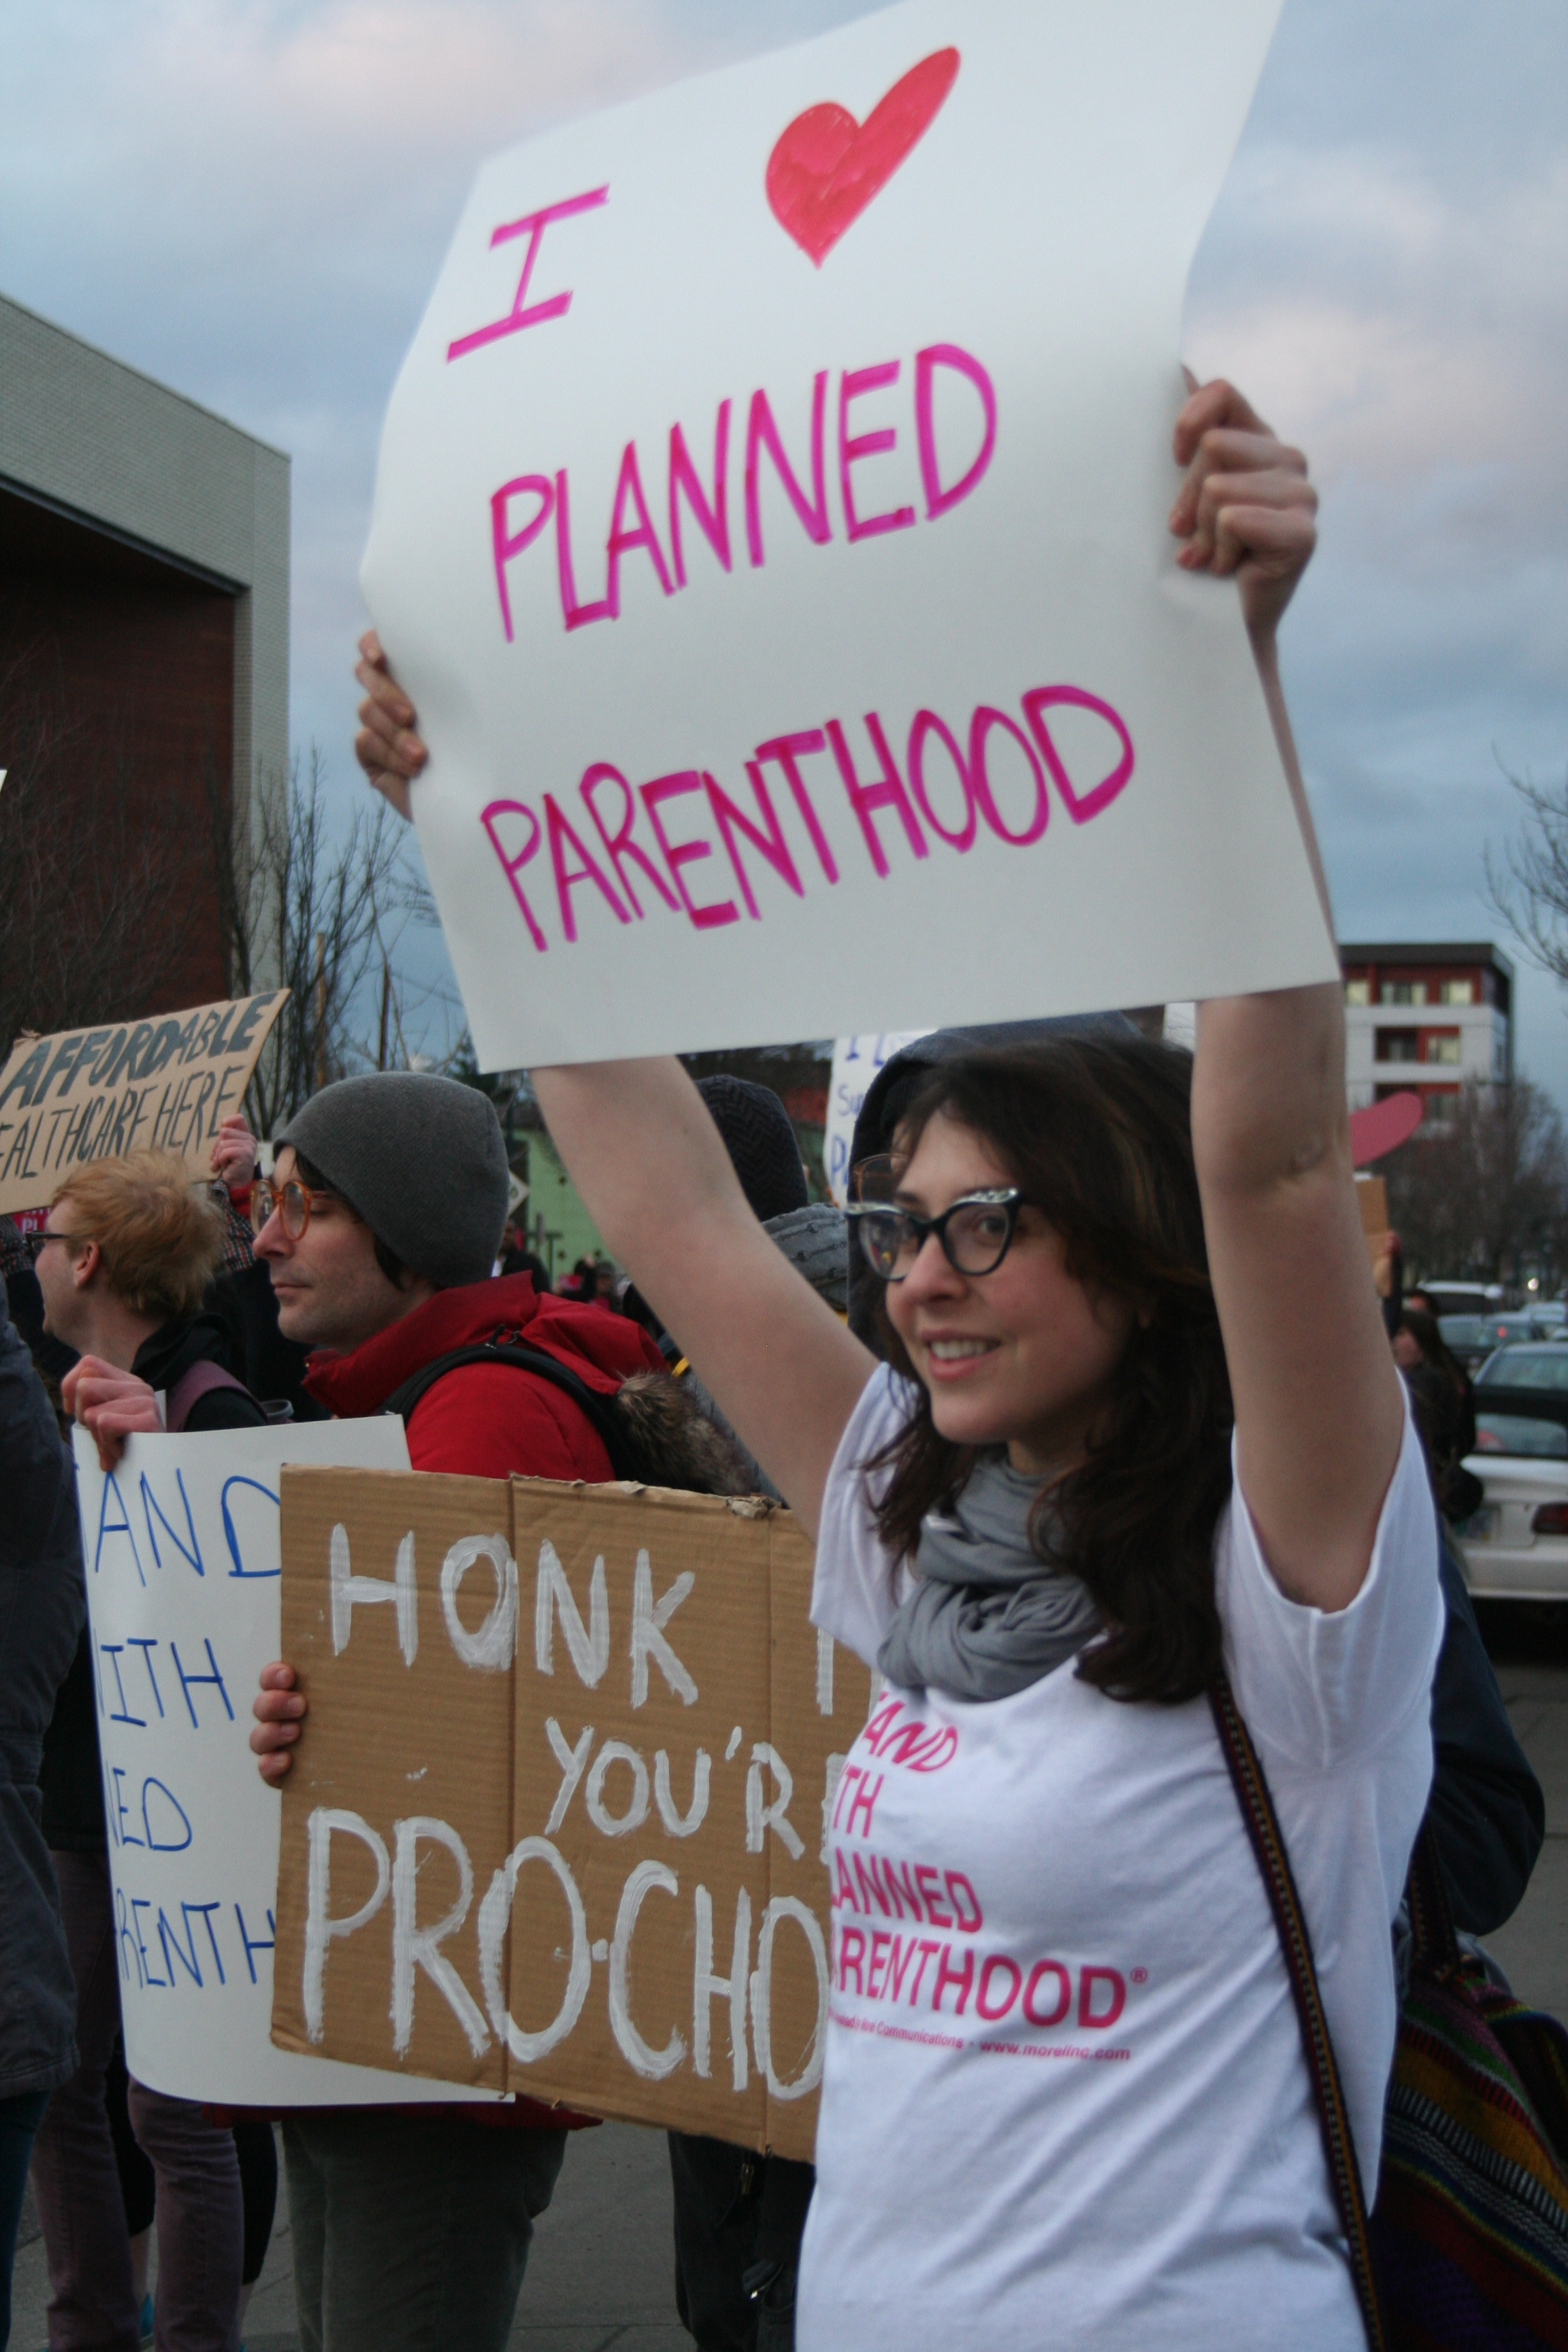 Planned_parenthood_supporters